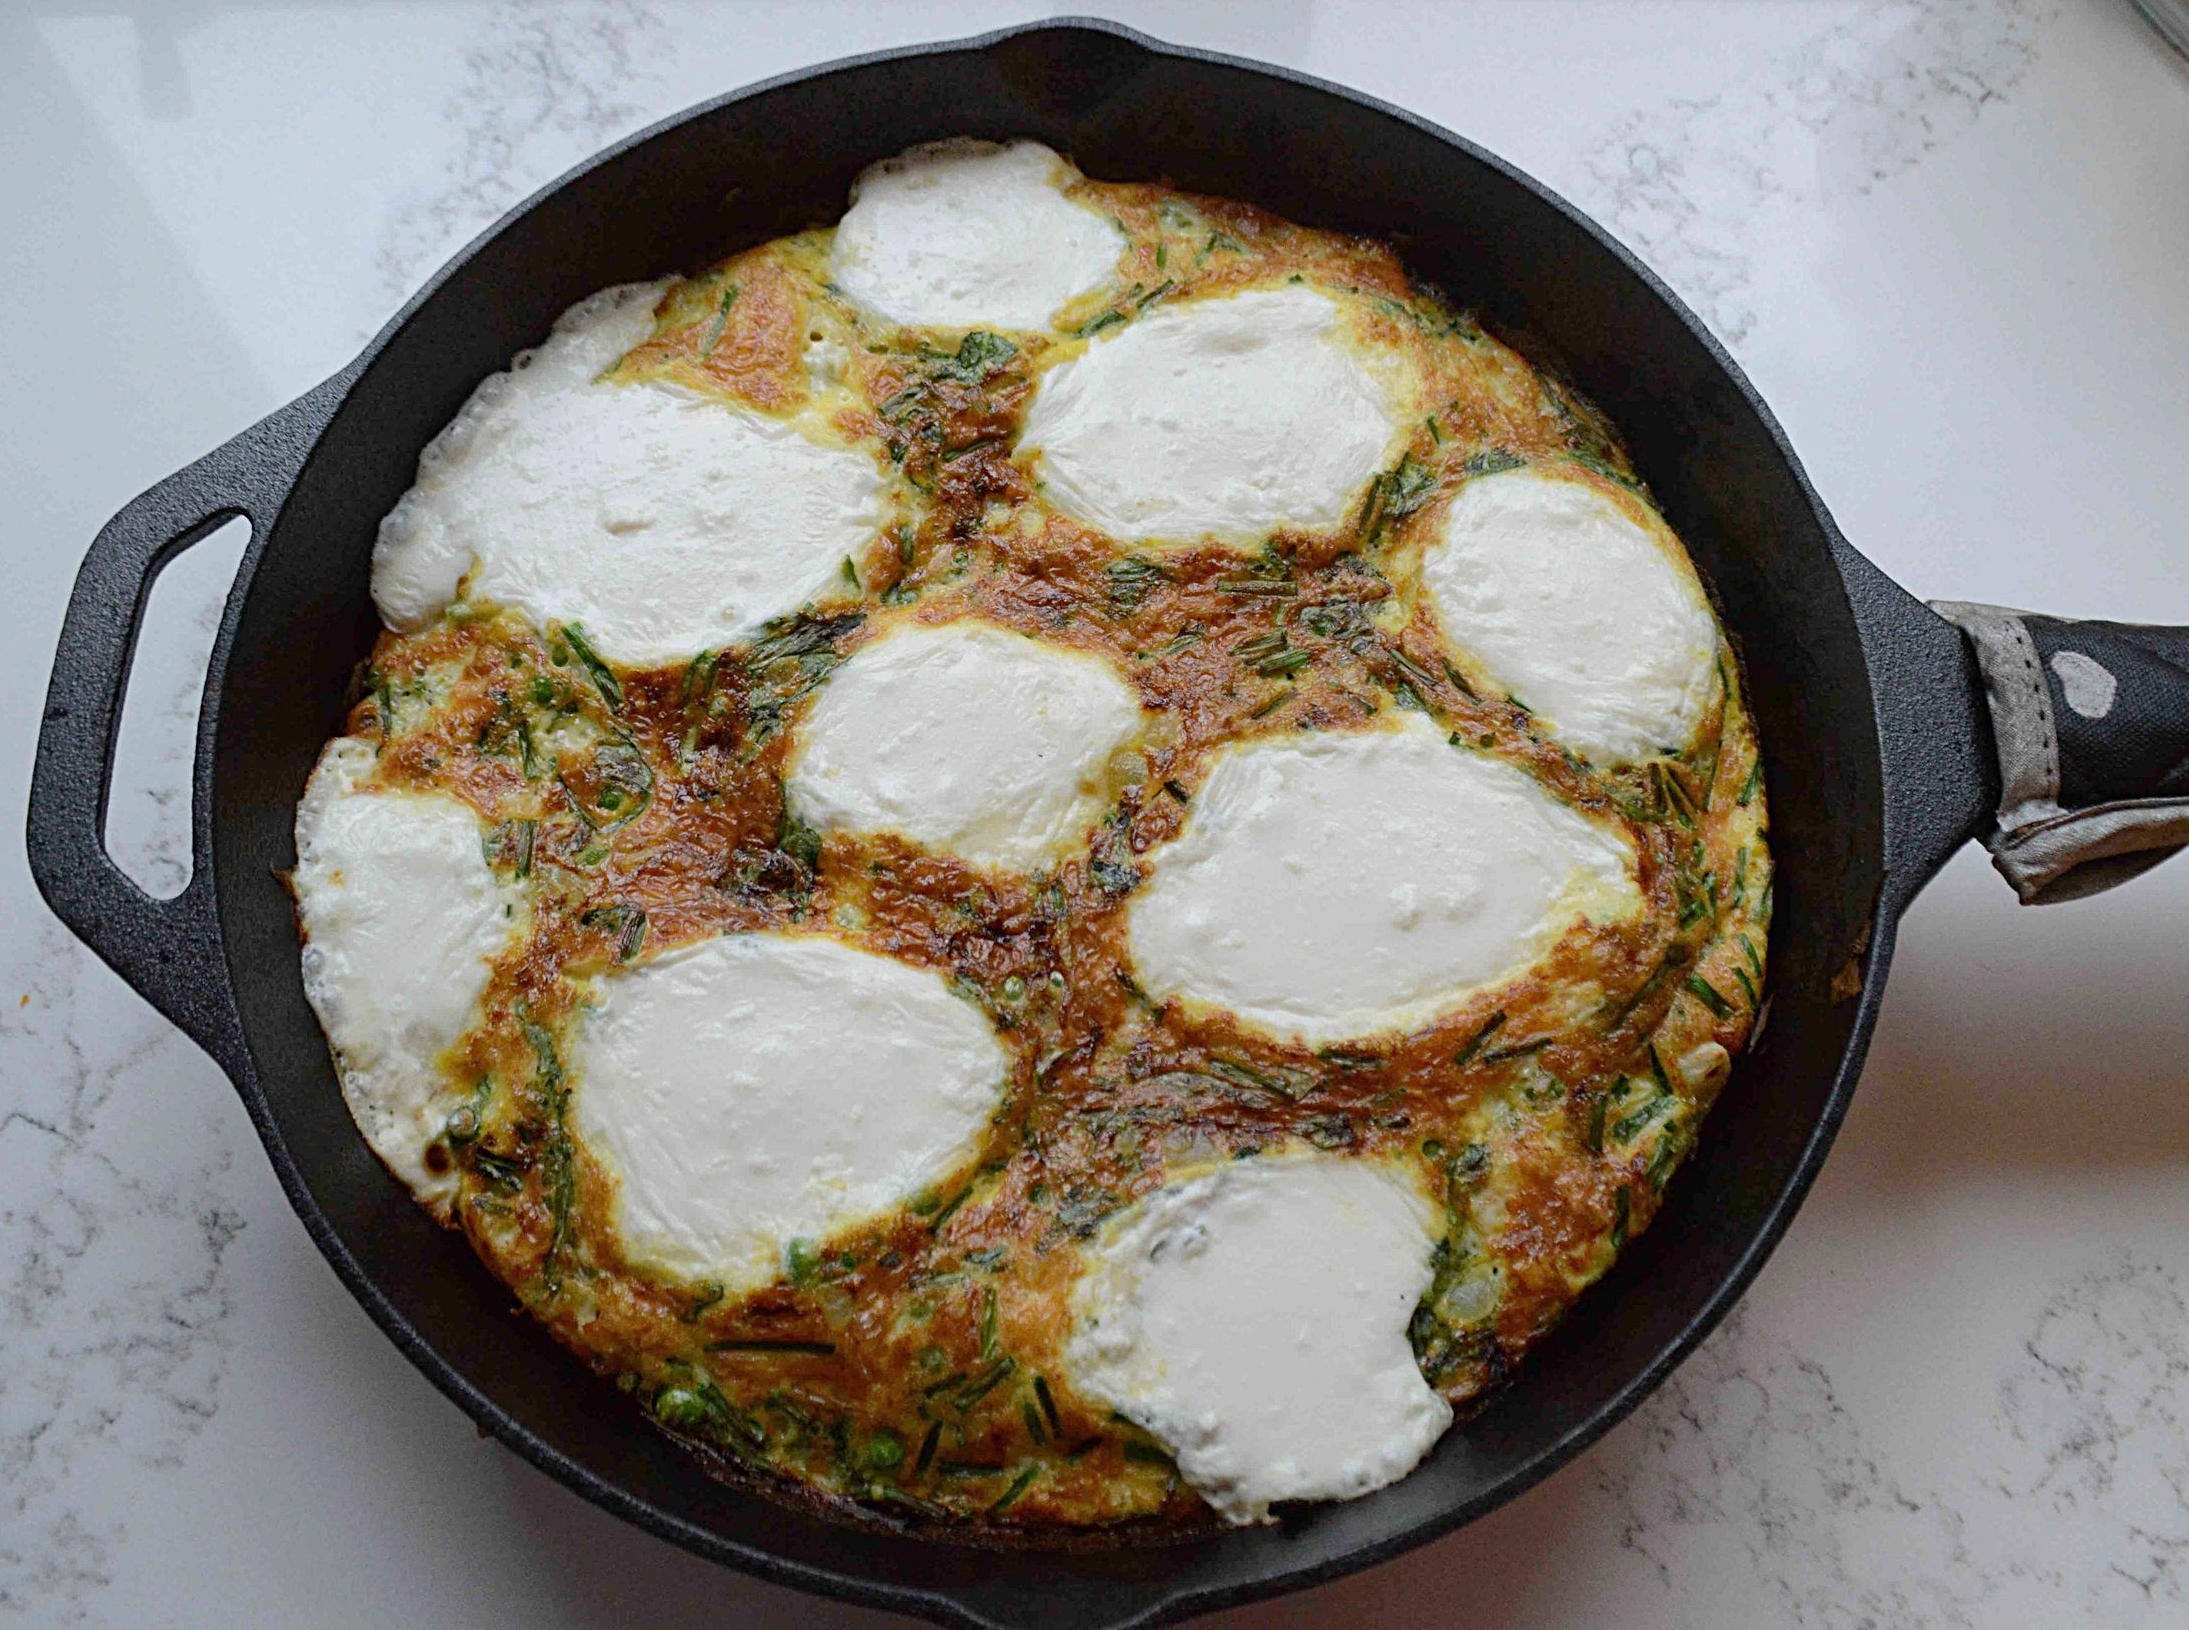 A New Way To Dinner's Frittata with Peas, Spring Greens and Ricotta